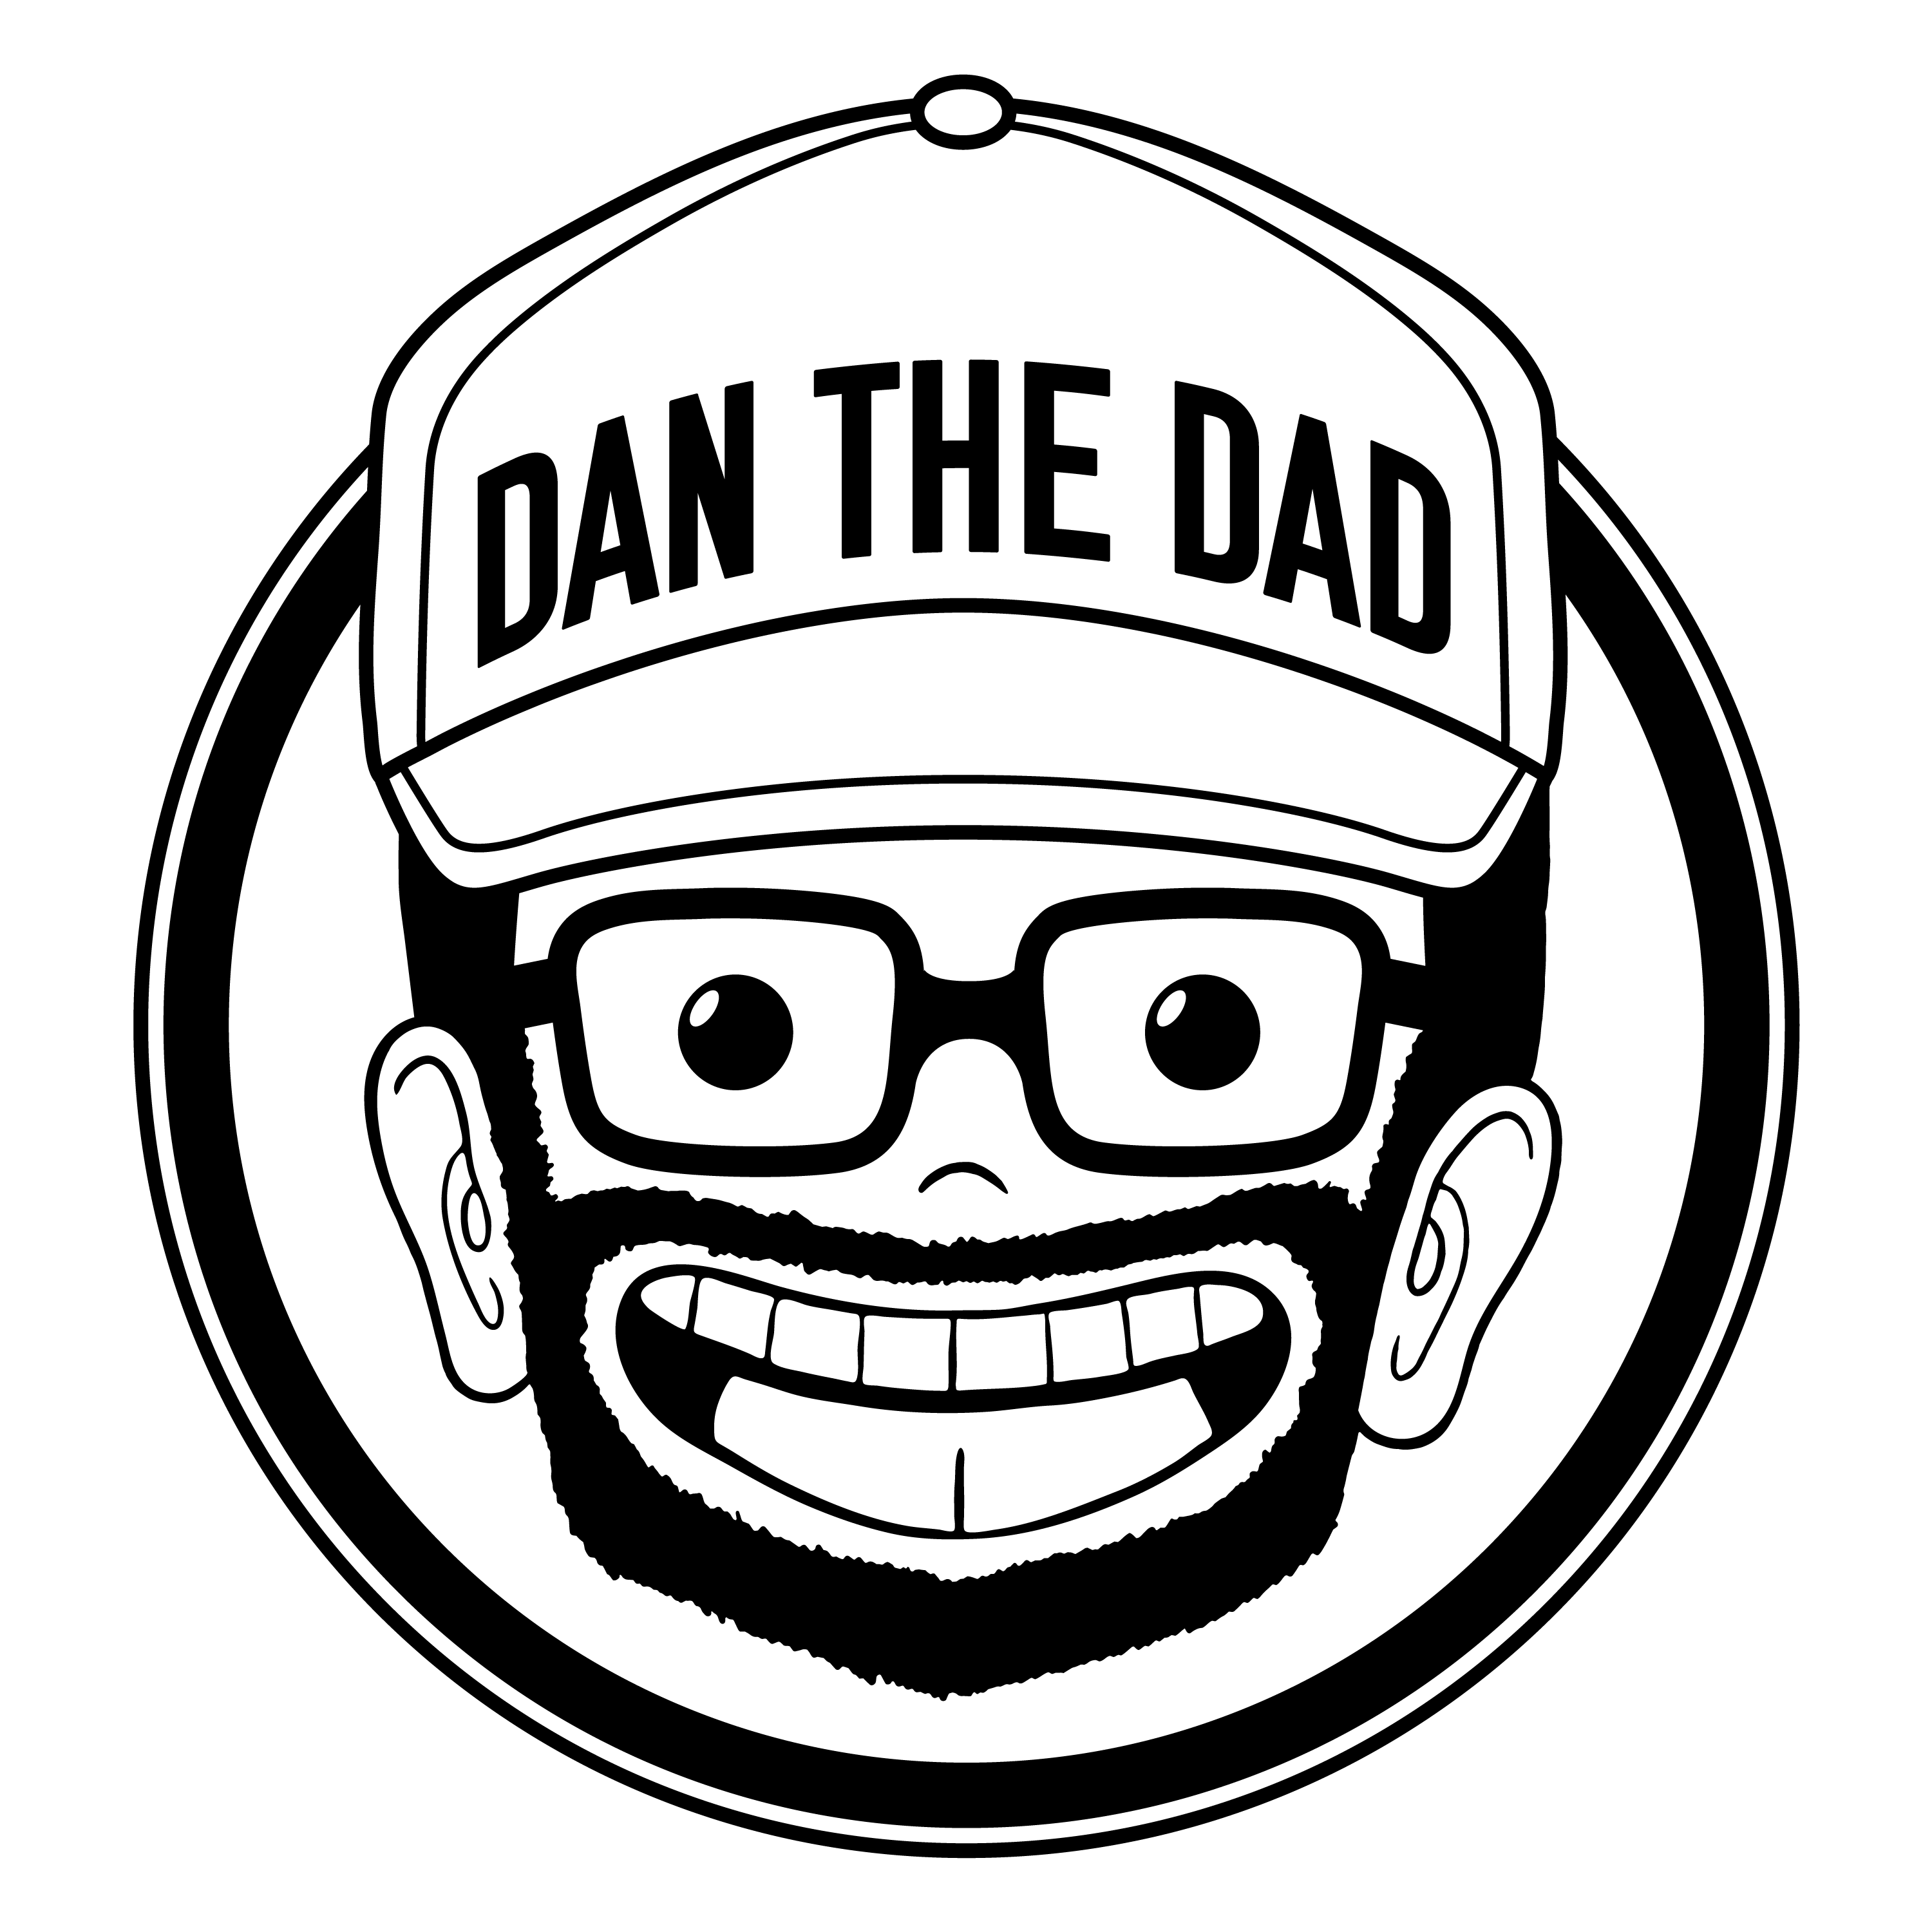 Dan the Dad - Independent Professional Wrestling Artwork & Merchandise by Mouthpiece Studios